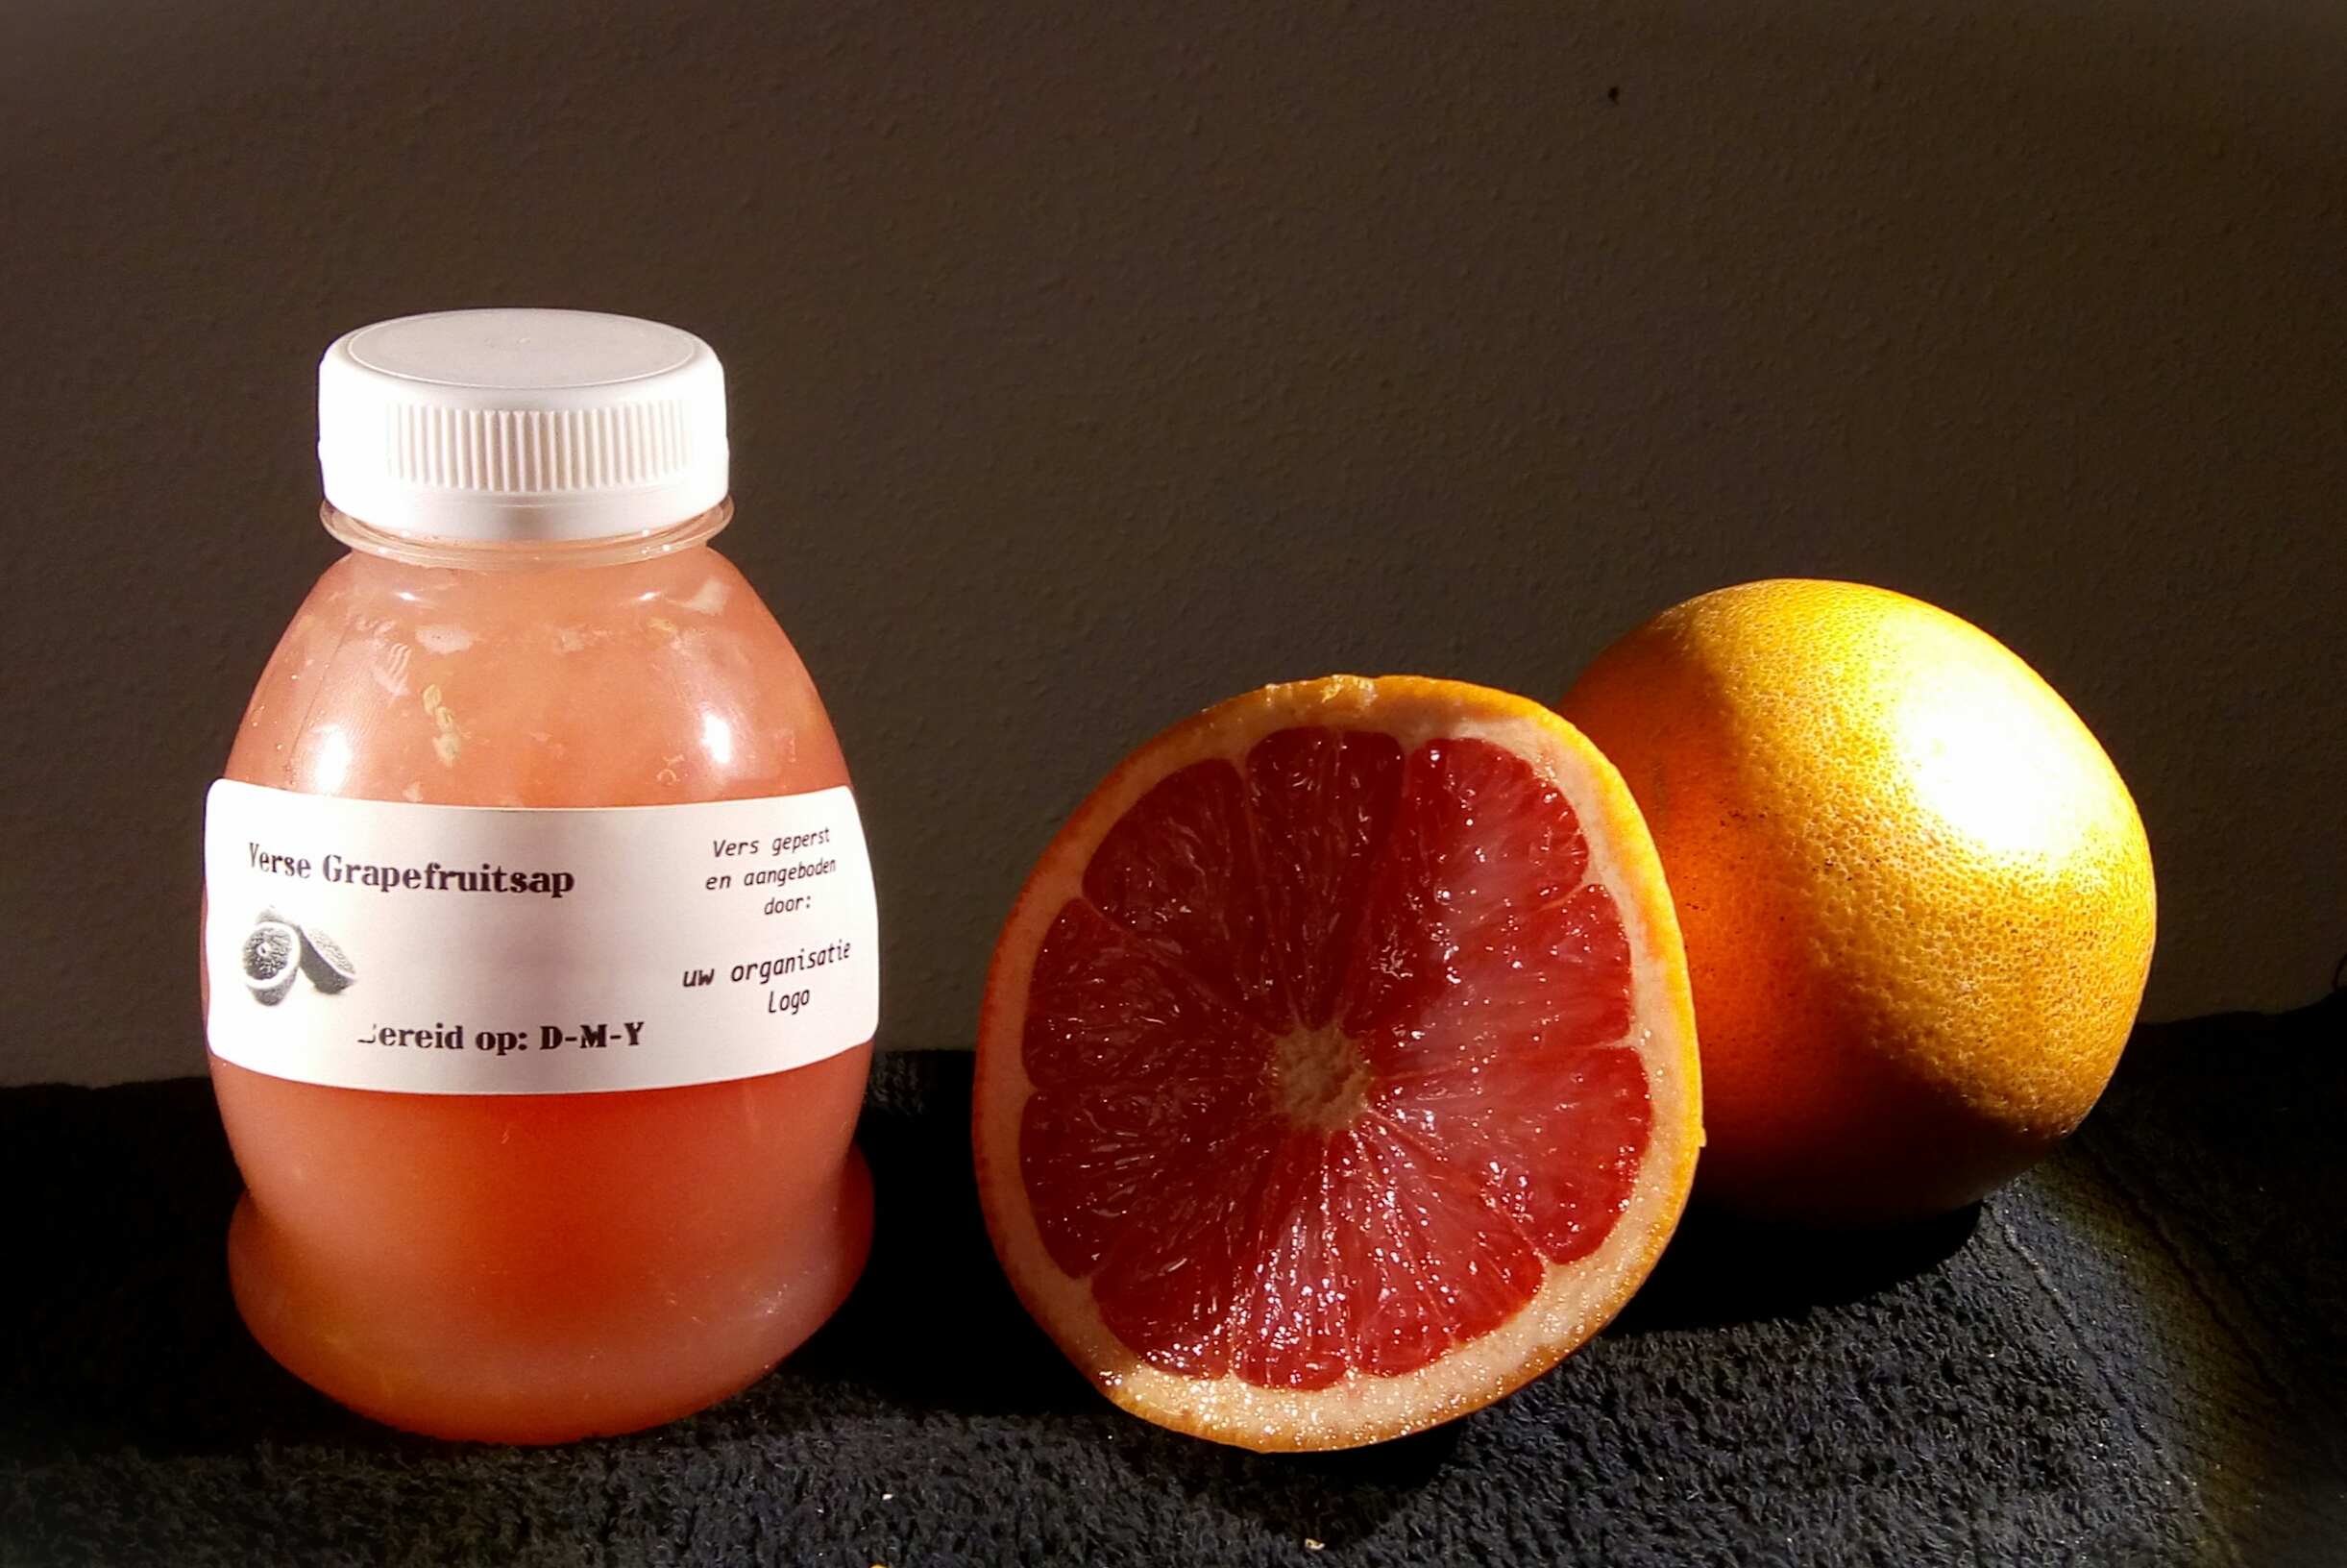 250 ml vers geperst Grapefruitsap